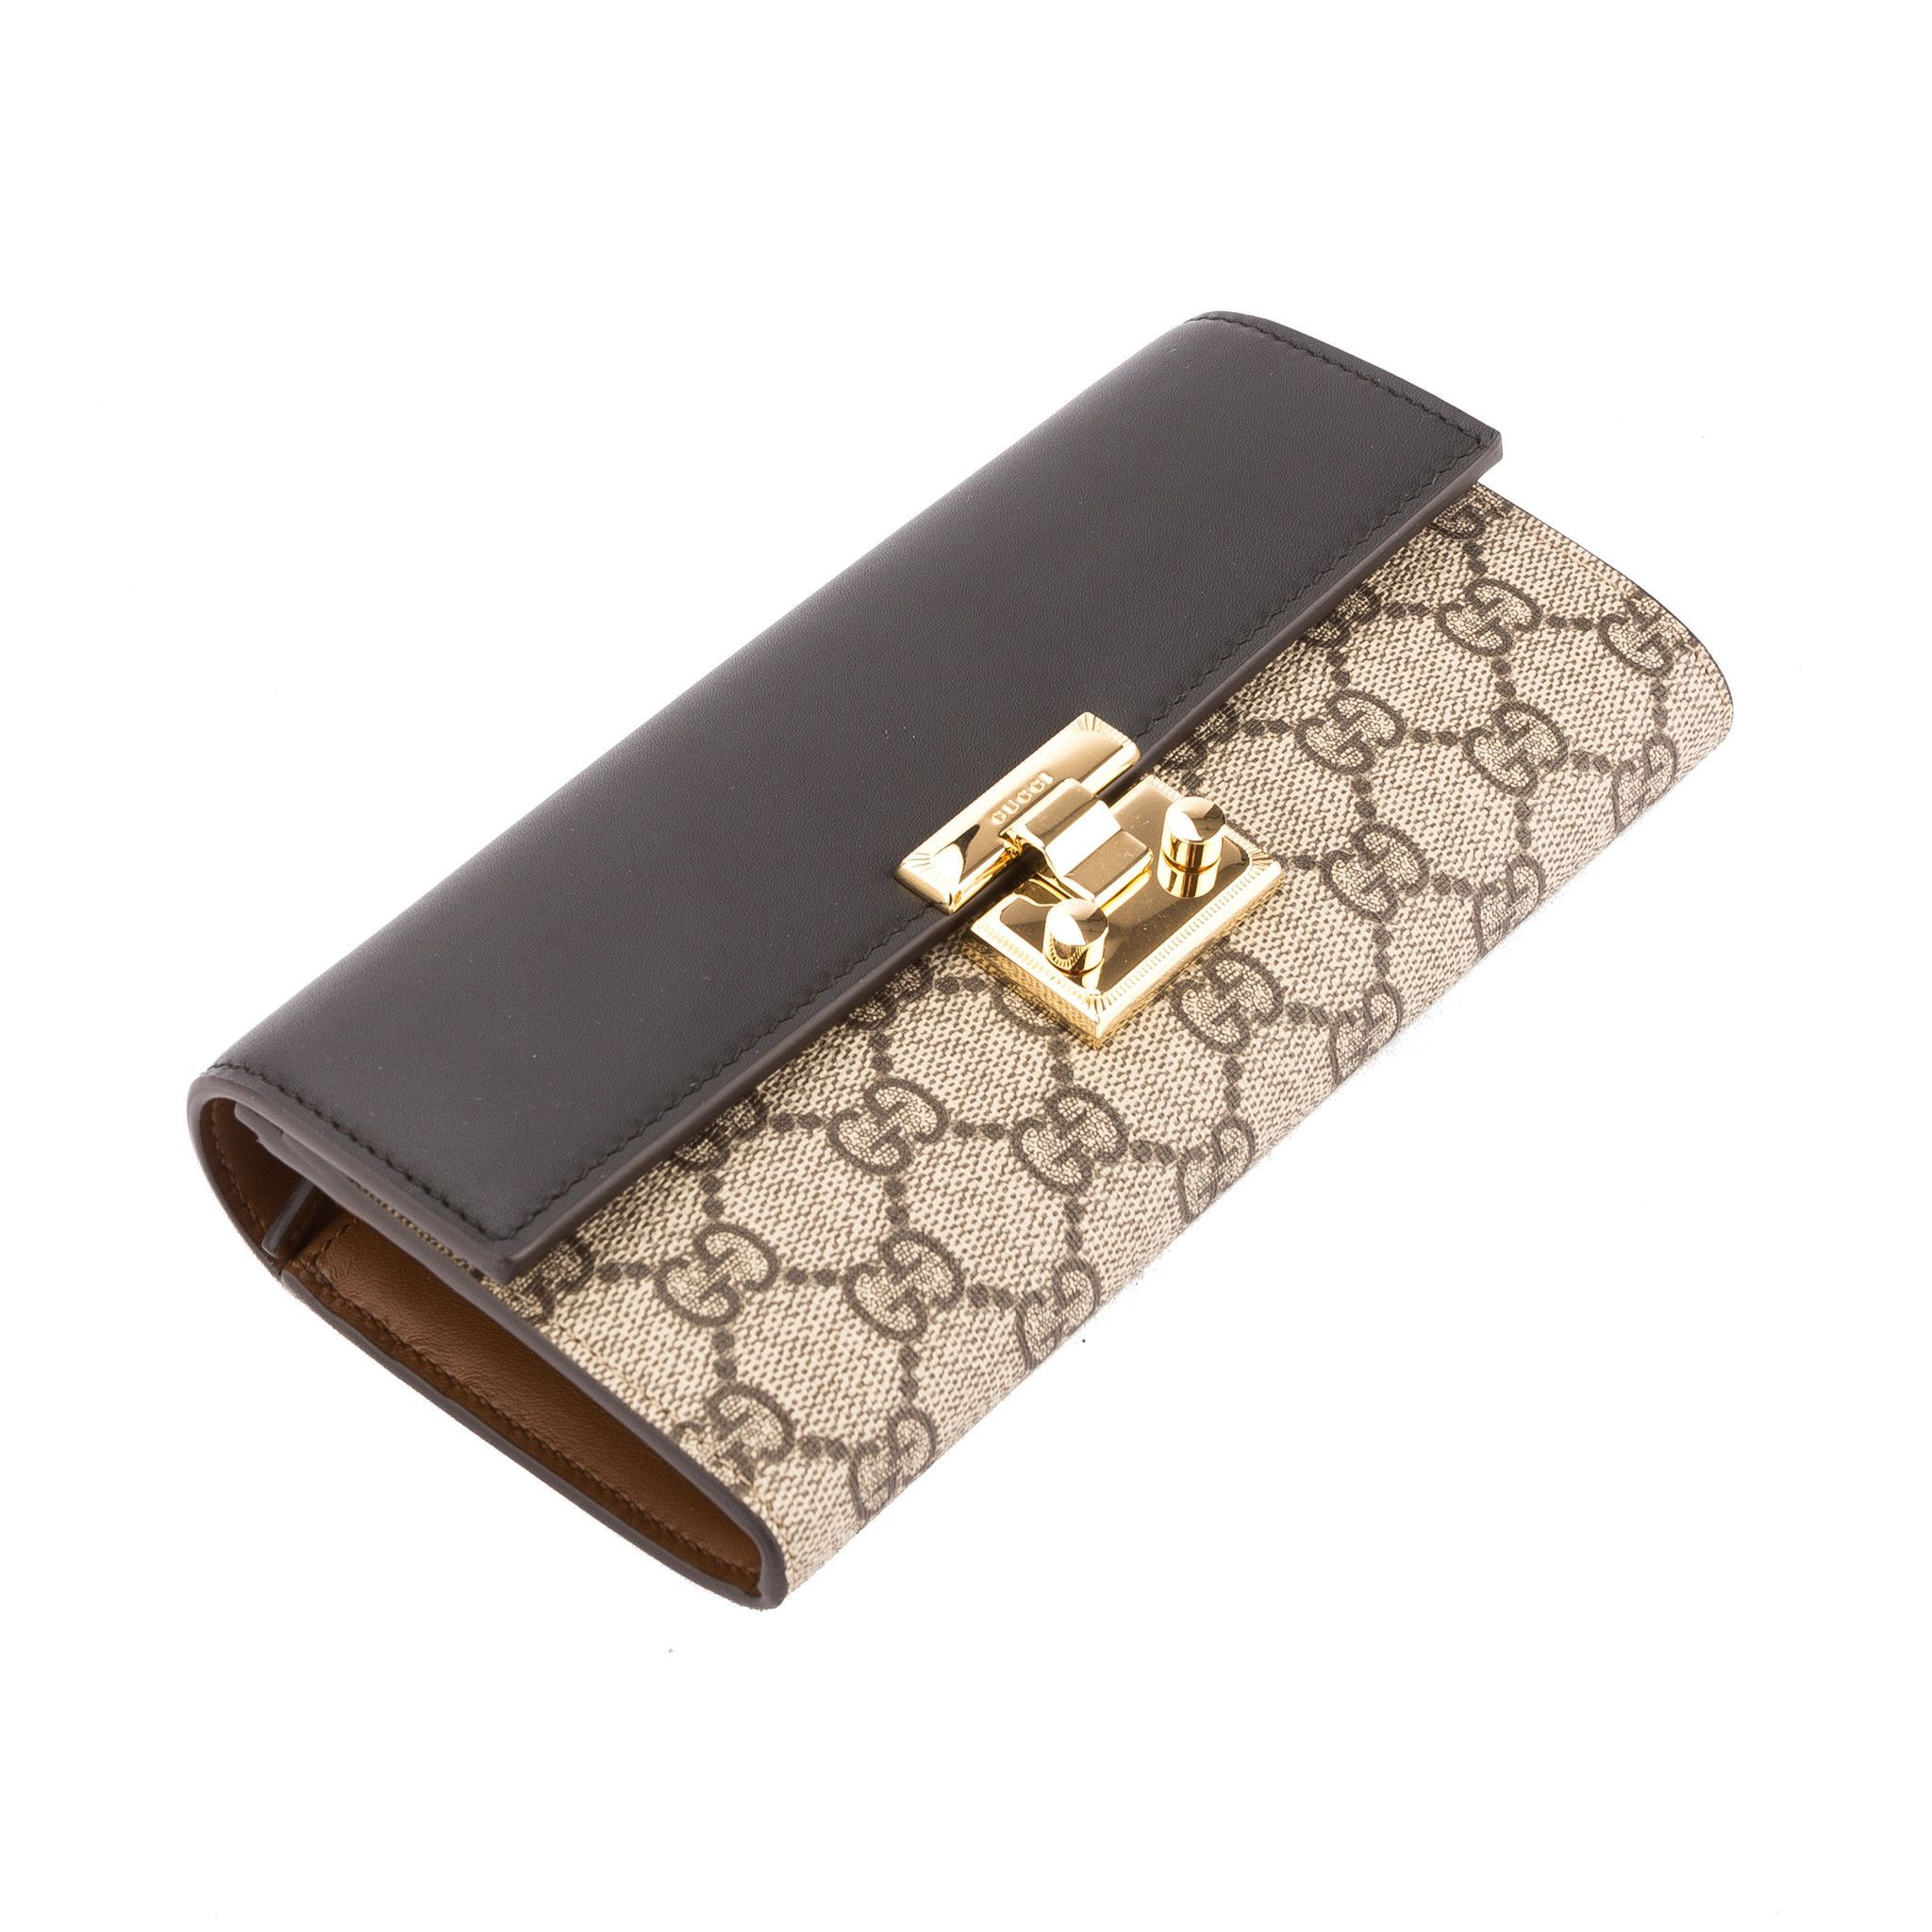 ccdd37cec9a Gucci Black Leather GG Supreme Padlock Continental Wallet (New with Ta -  3452007